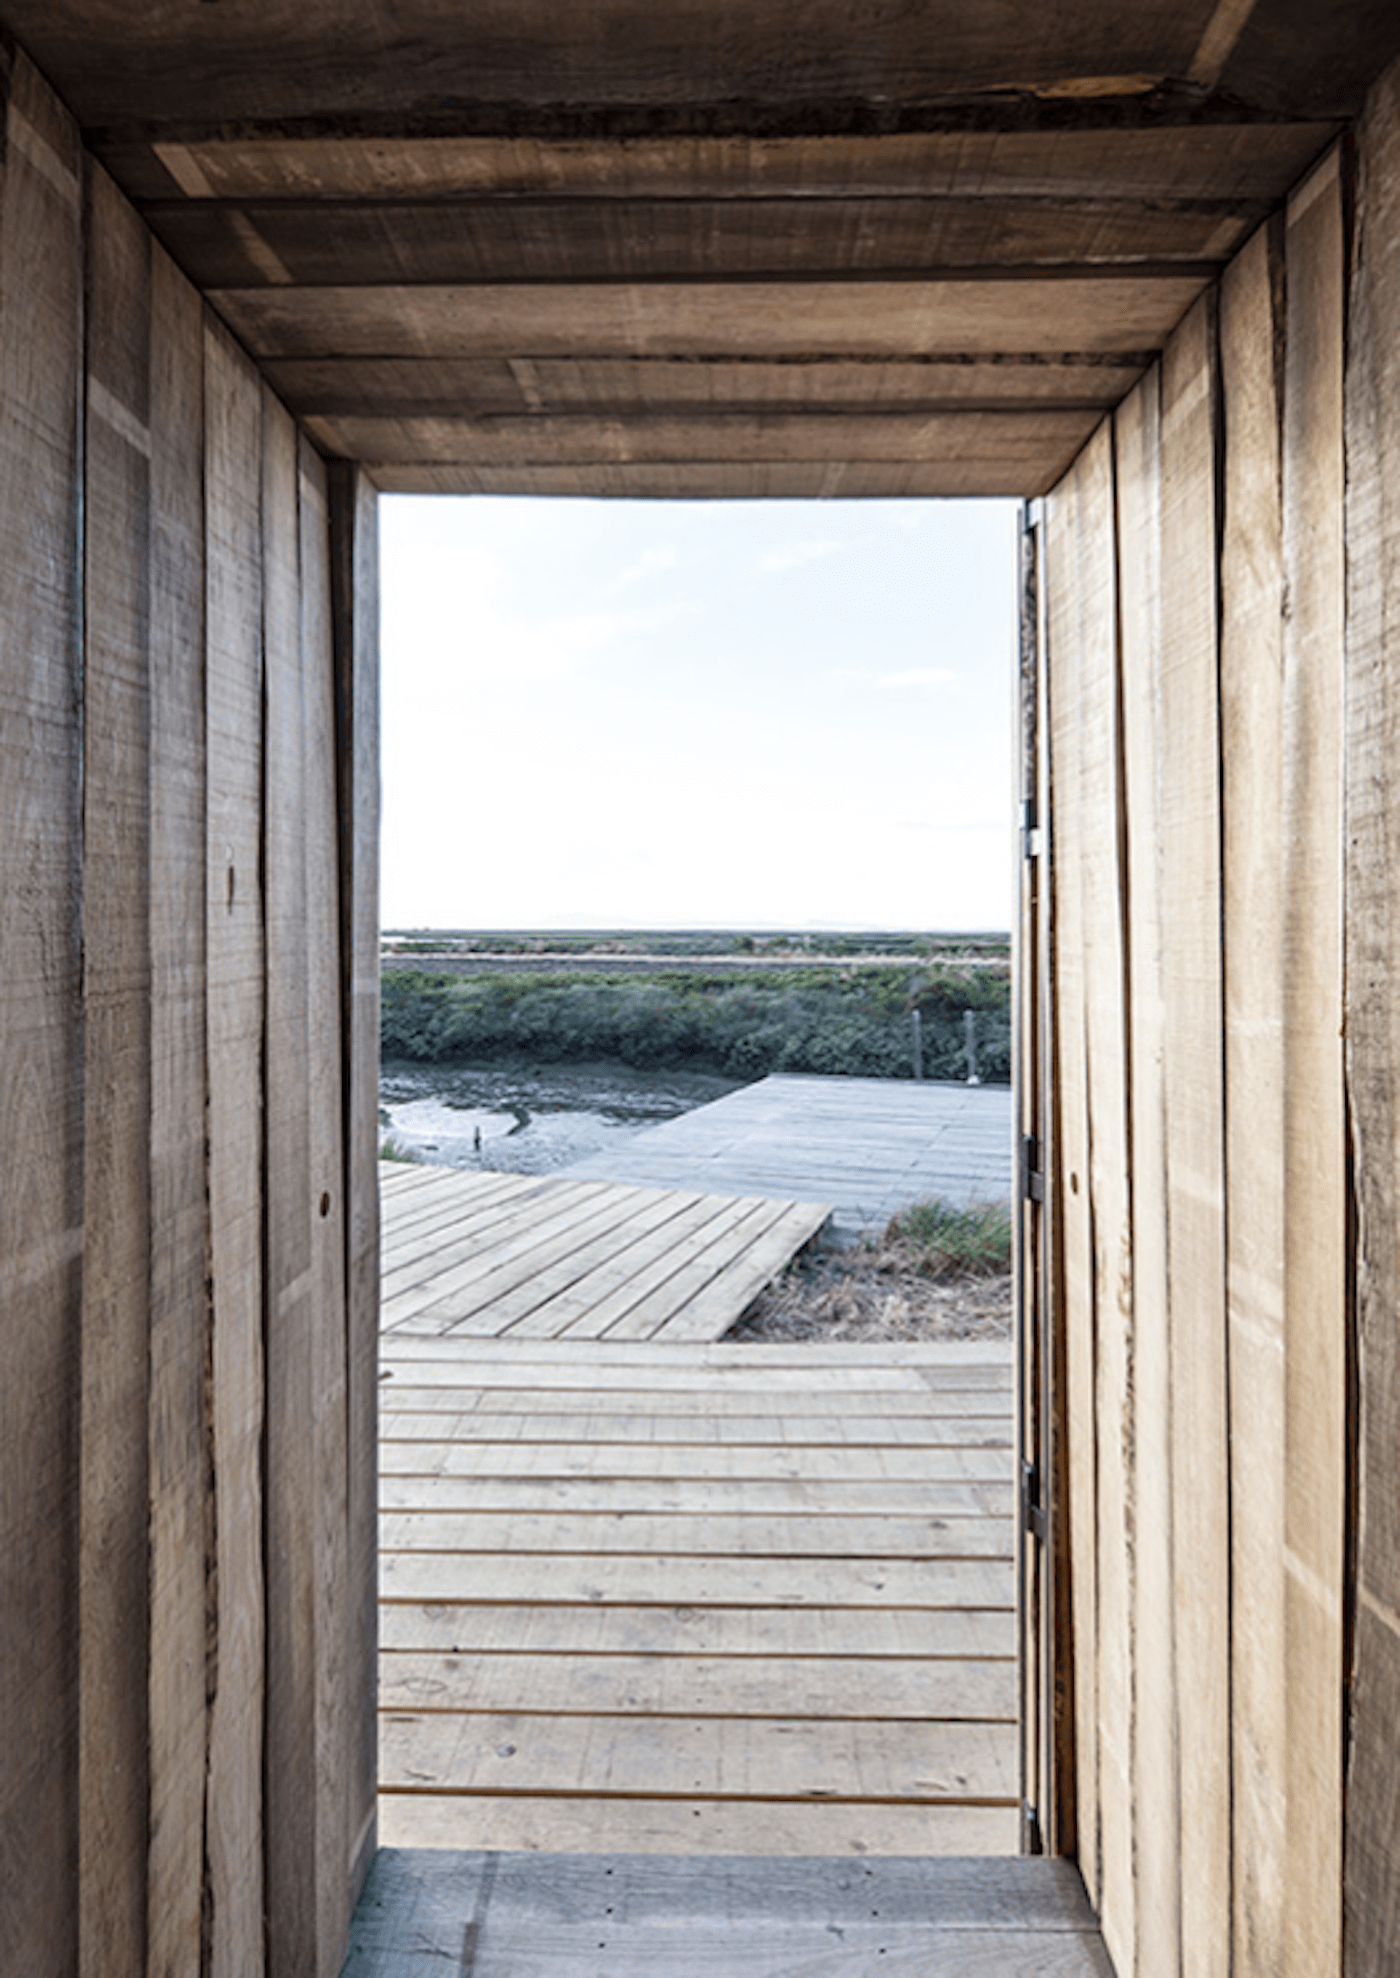 Views towards river from recycled timber hut